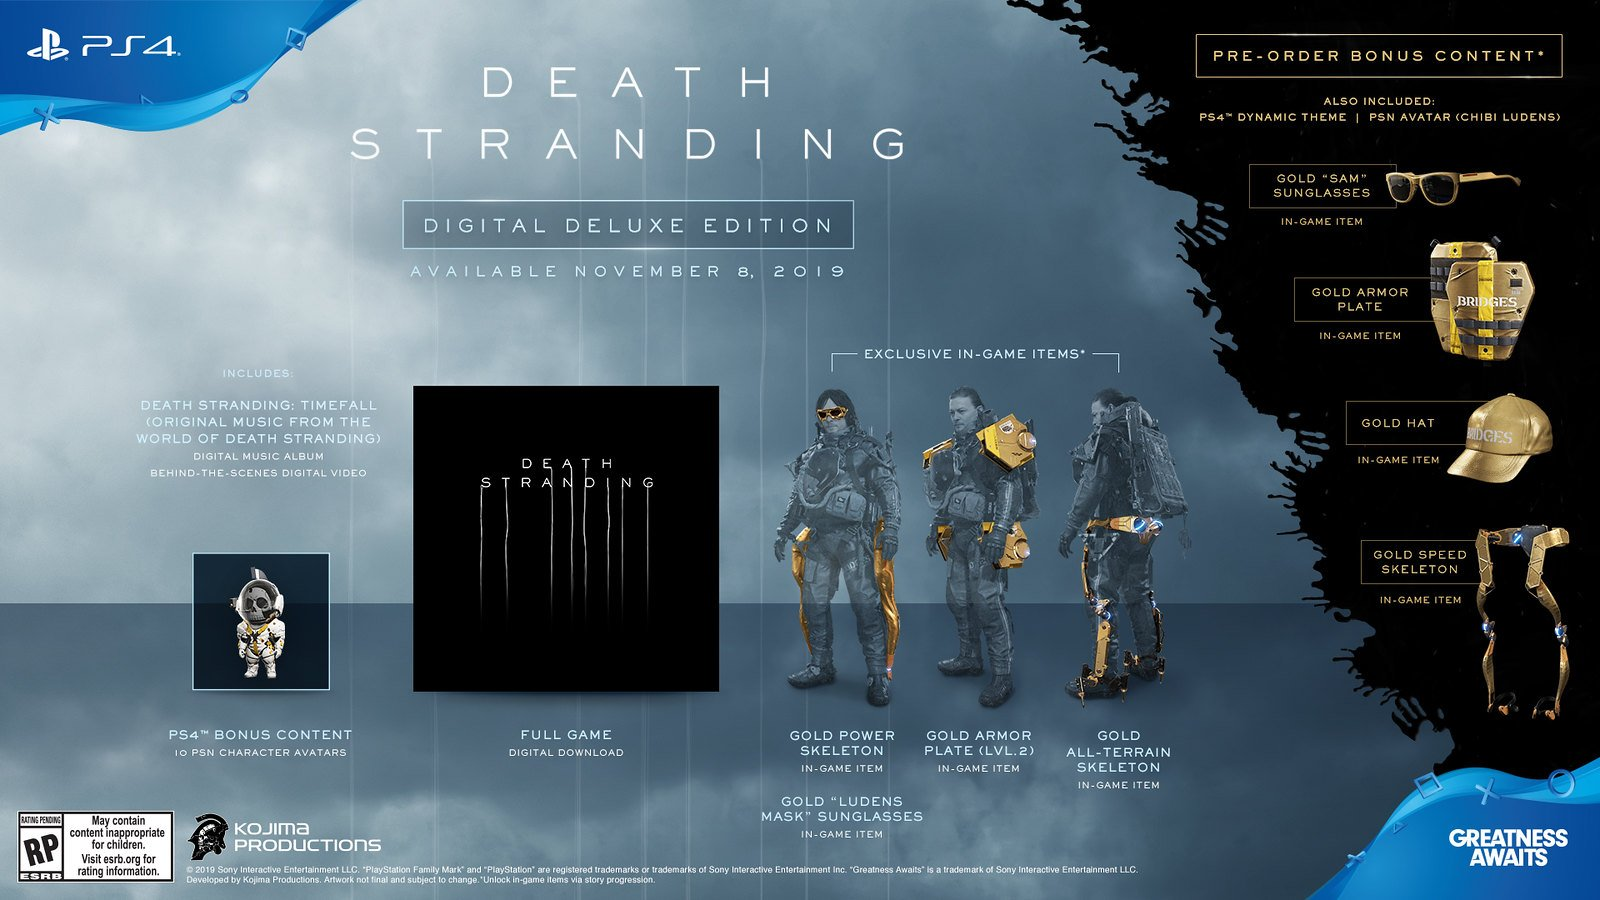 Death Stranding Digital Deluxe edition differences preorder bonuses